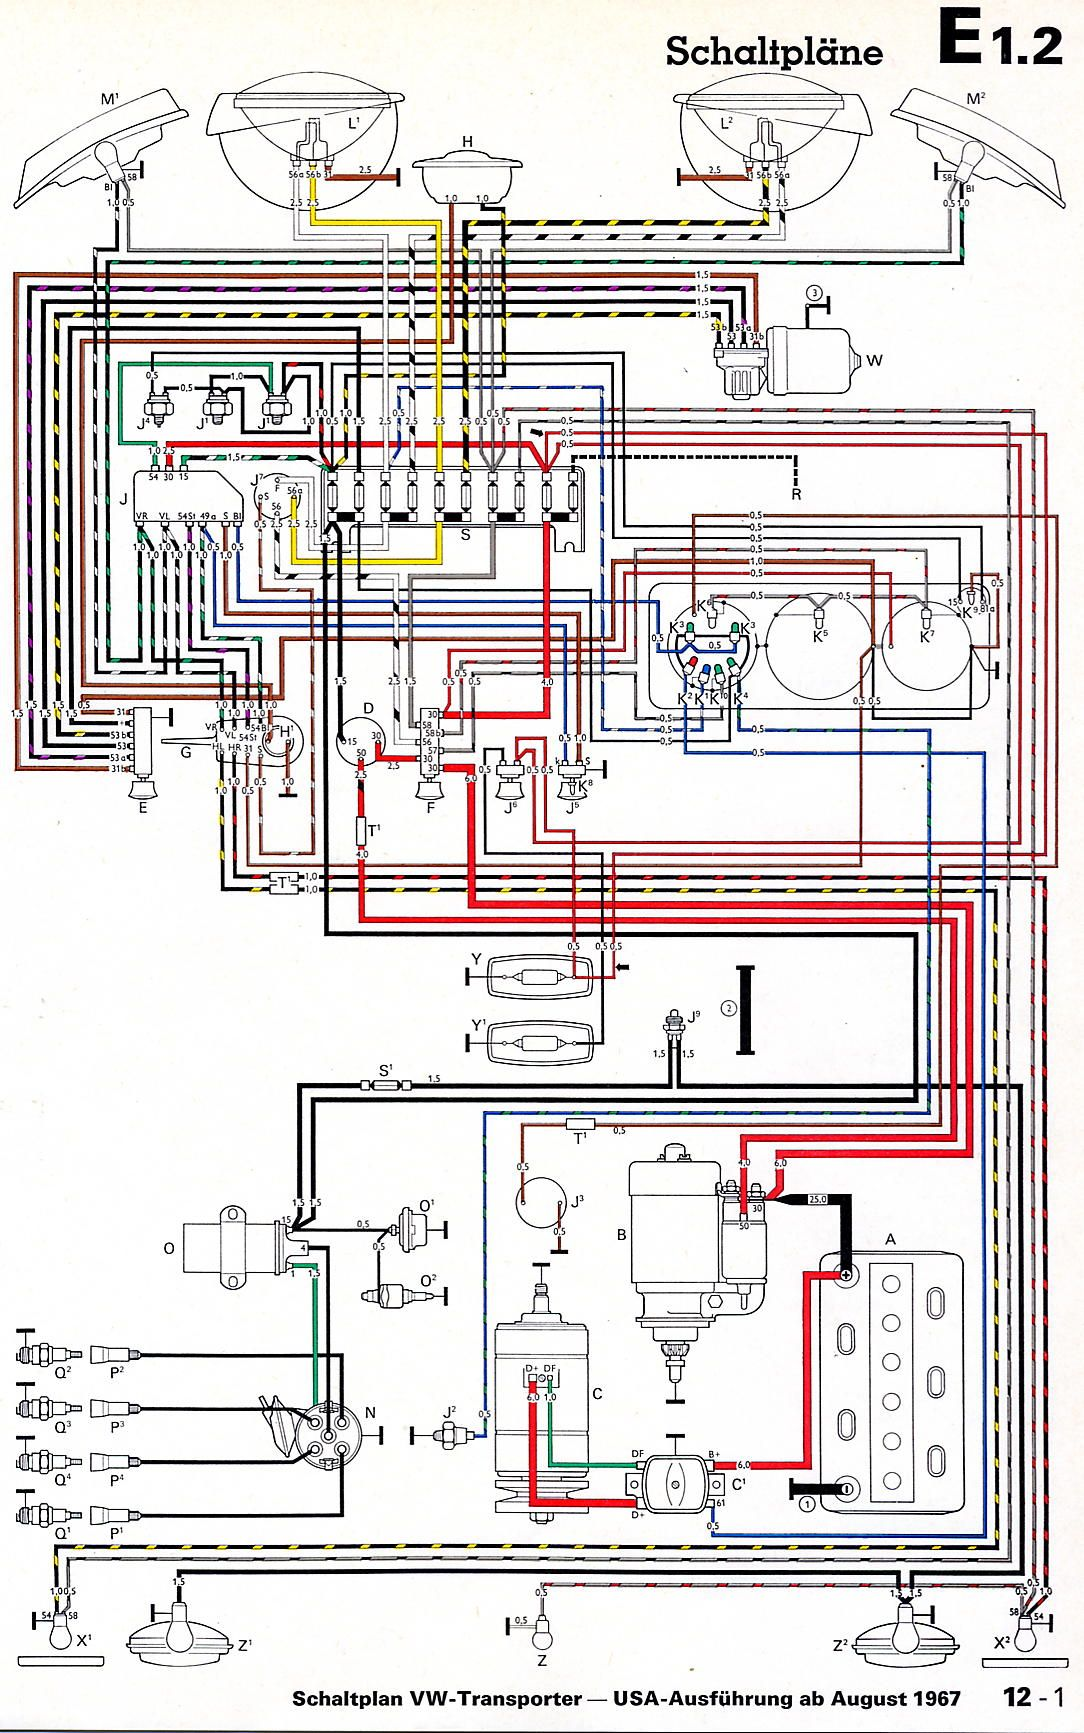 1964 Vw Bus Engine Diagram Great Design Of Wiring Volkswagen Diagrams 1966 Detailed Schematics Rh Antonartgallery Com Type 4 20